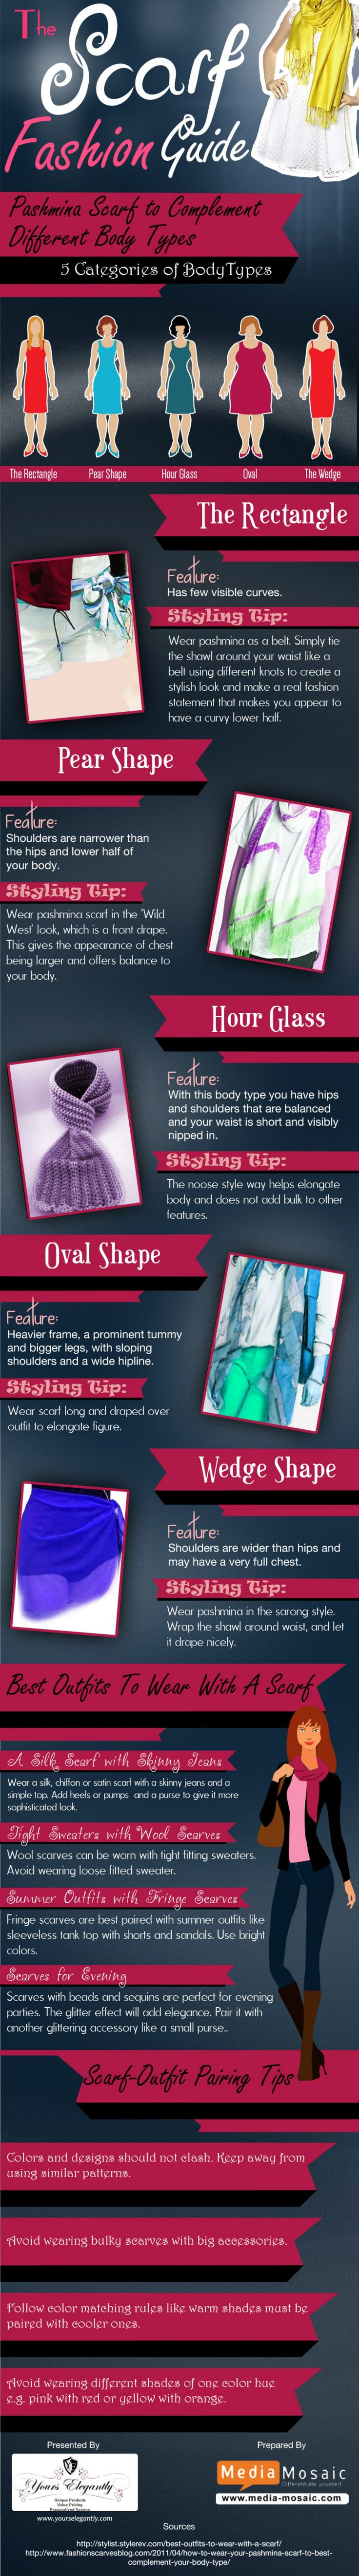 The Scarf Fashion Guide